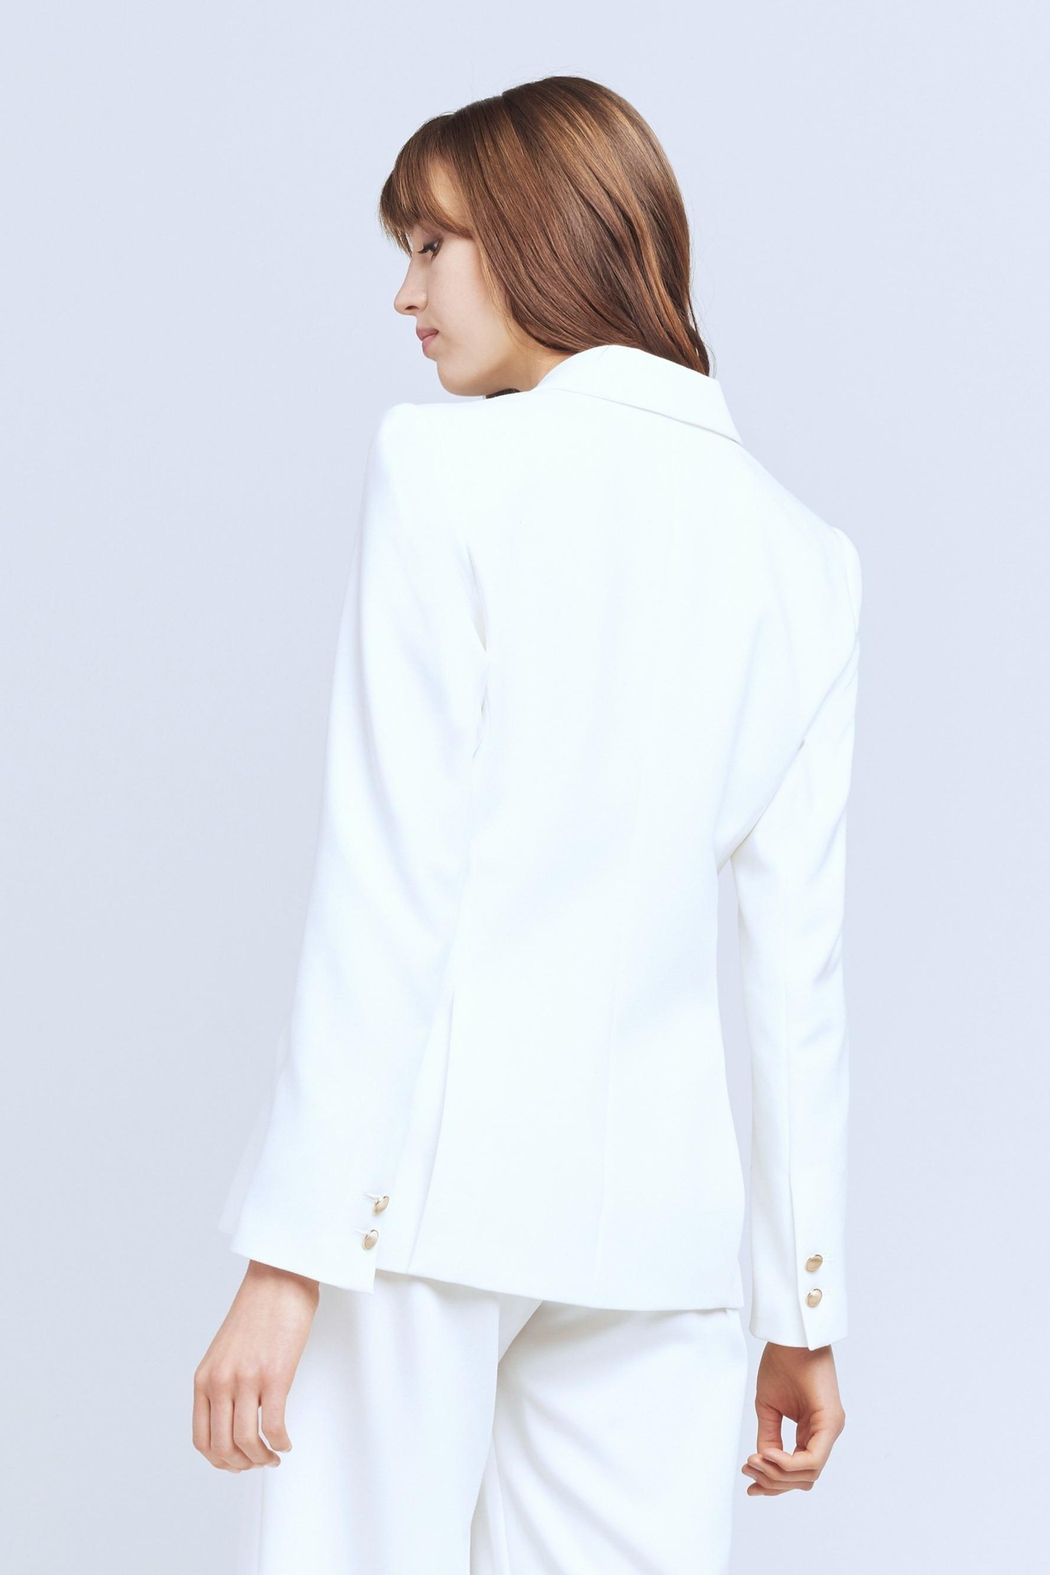 L'Agence Chamberlain Blazer In Ivory - Side Cropped Image